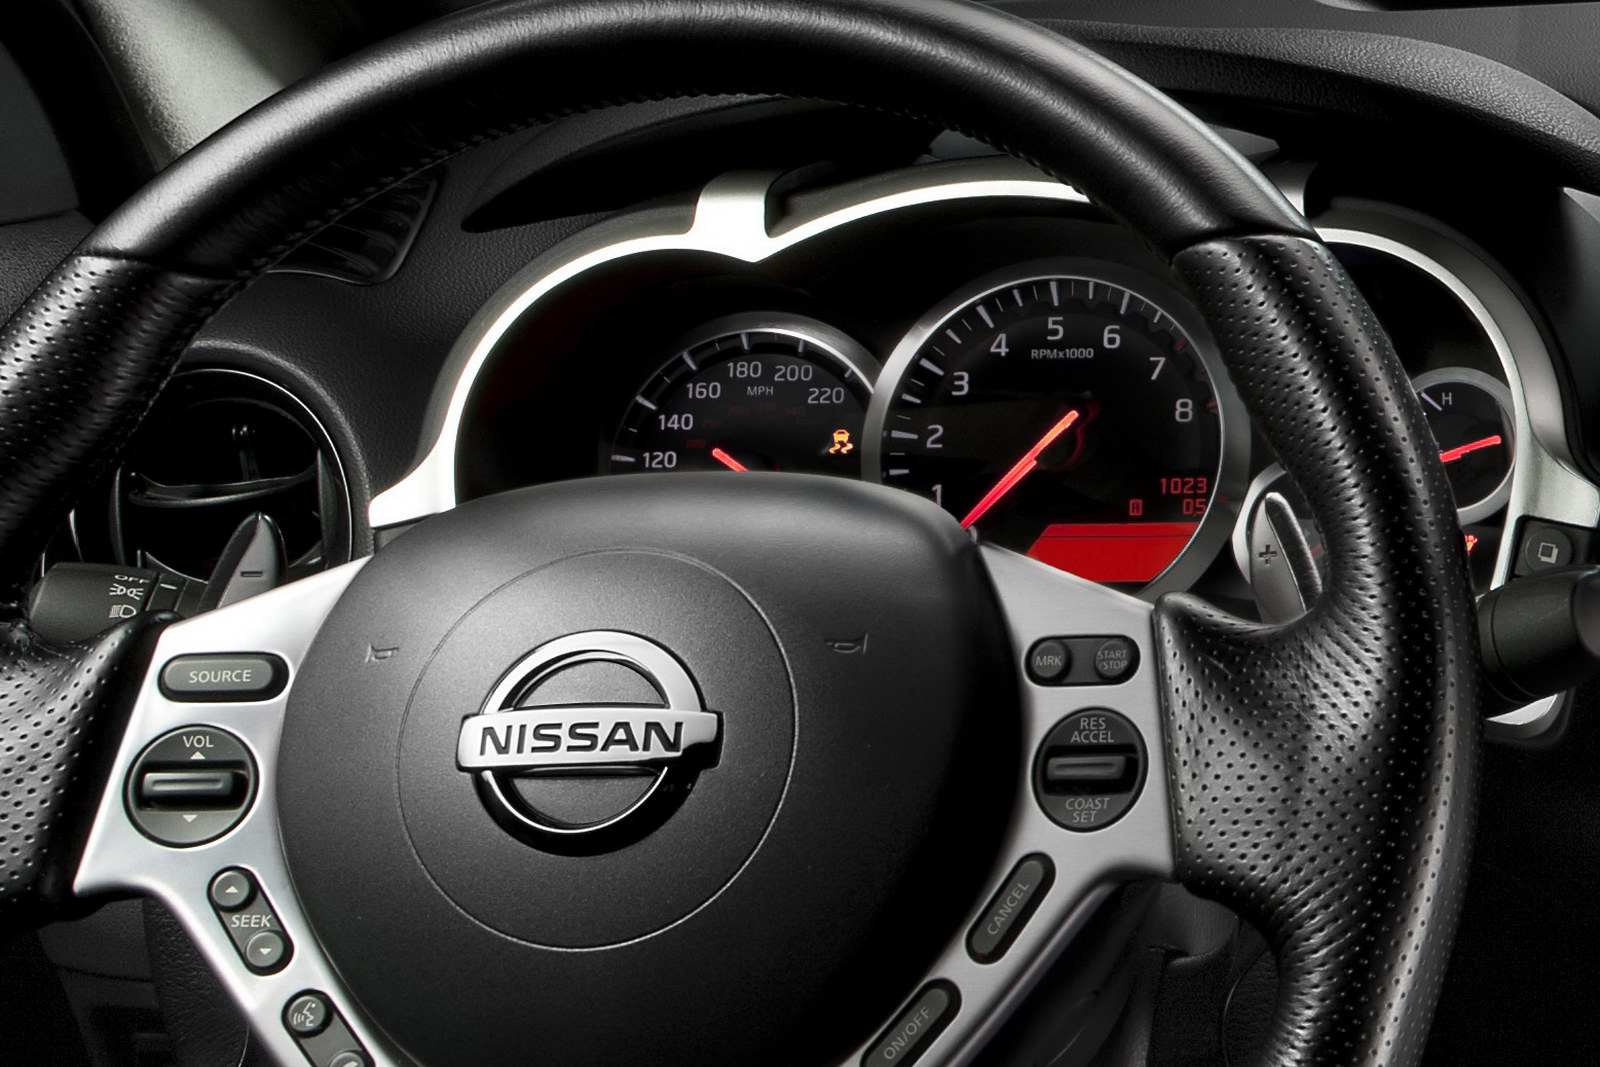 Nissan 480hp Juke R 8 2011 Nissans 480HP Juke R Finally Revealed in Photos and Videos